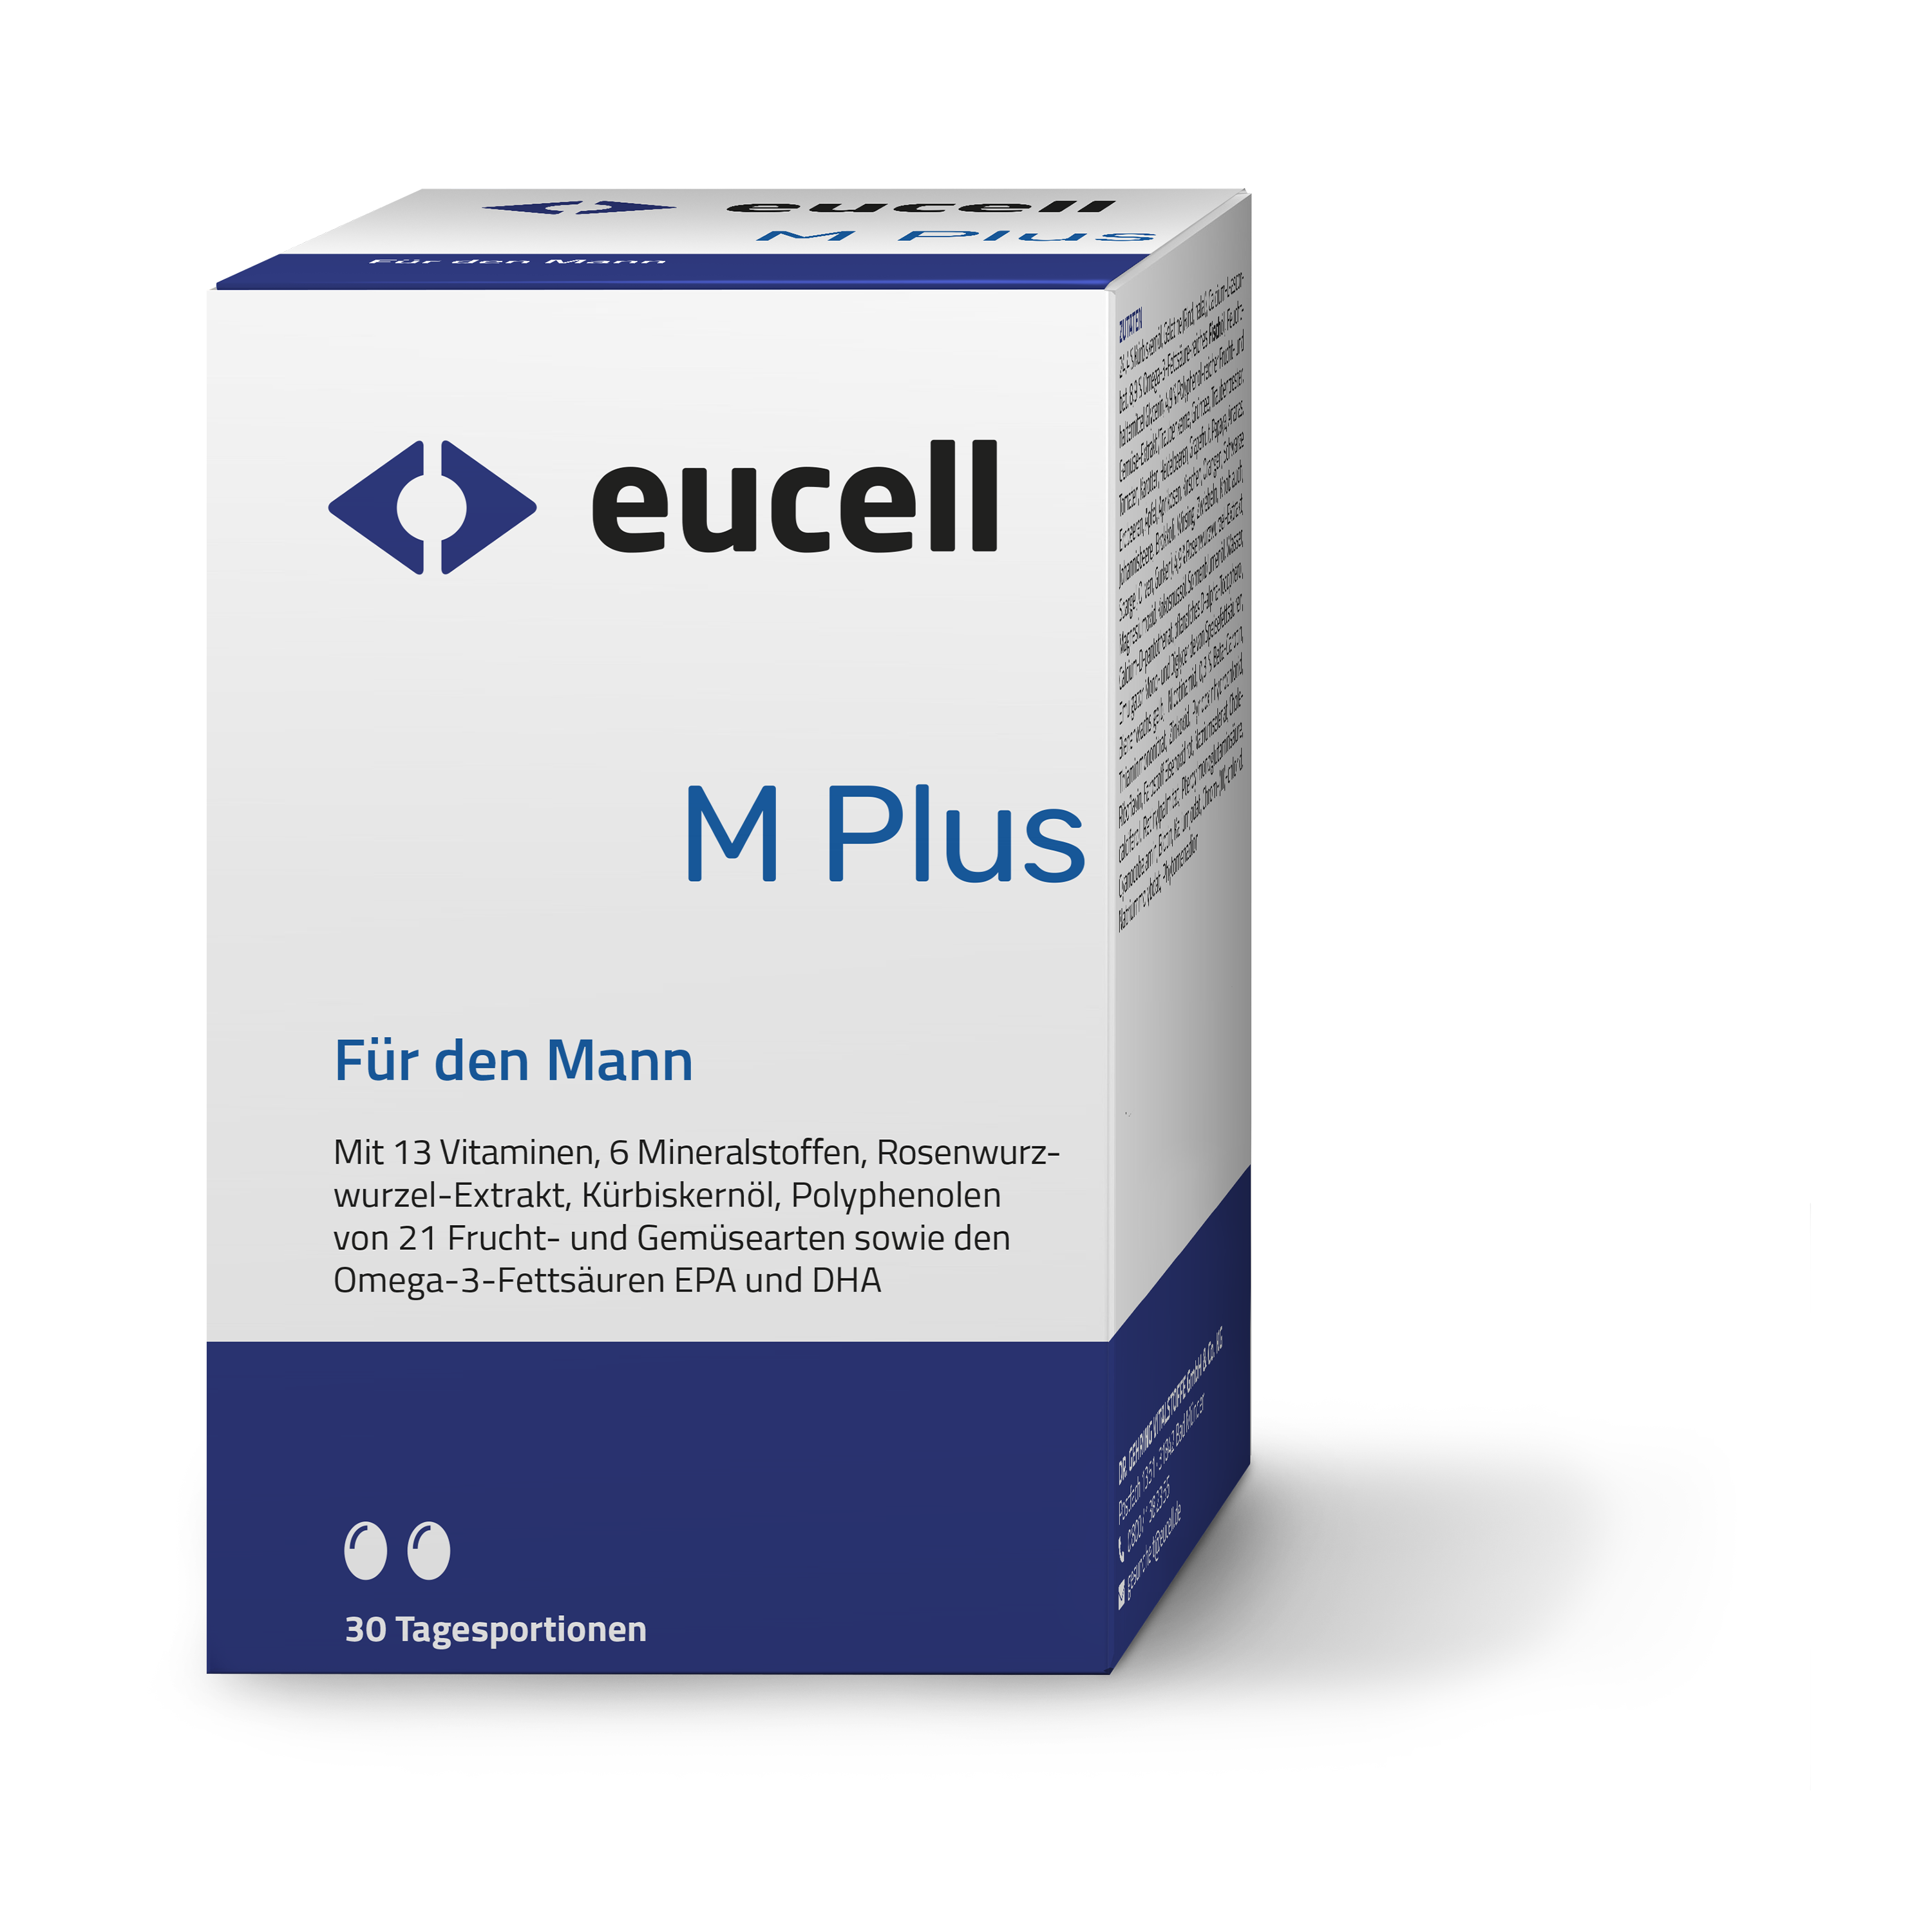 EUCELL M Plus